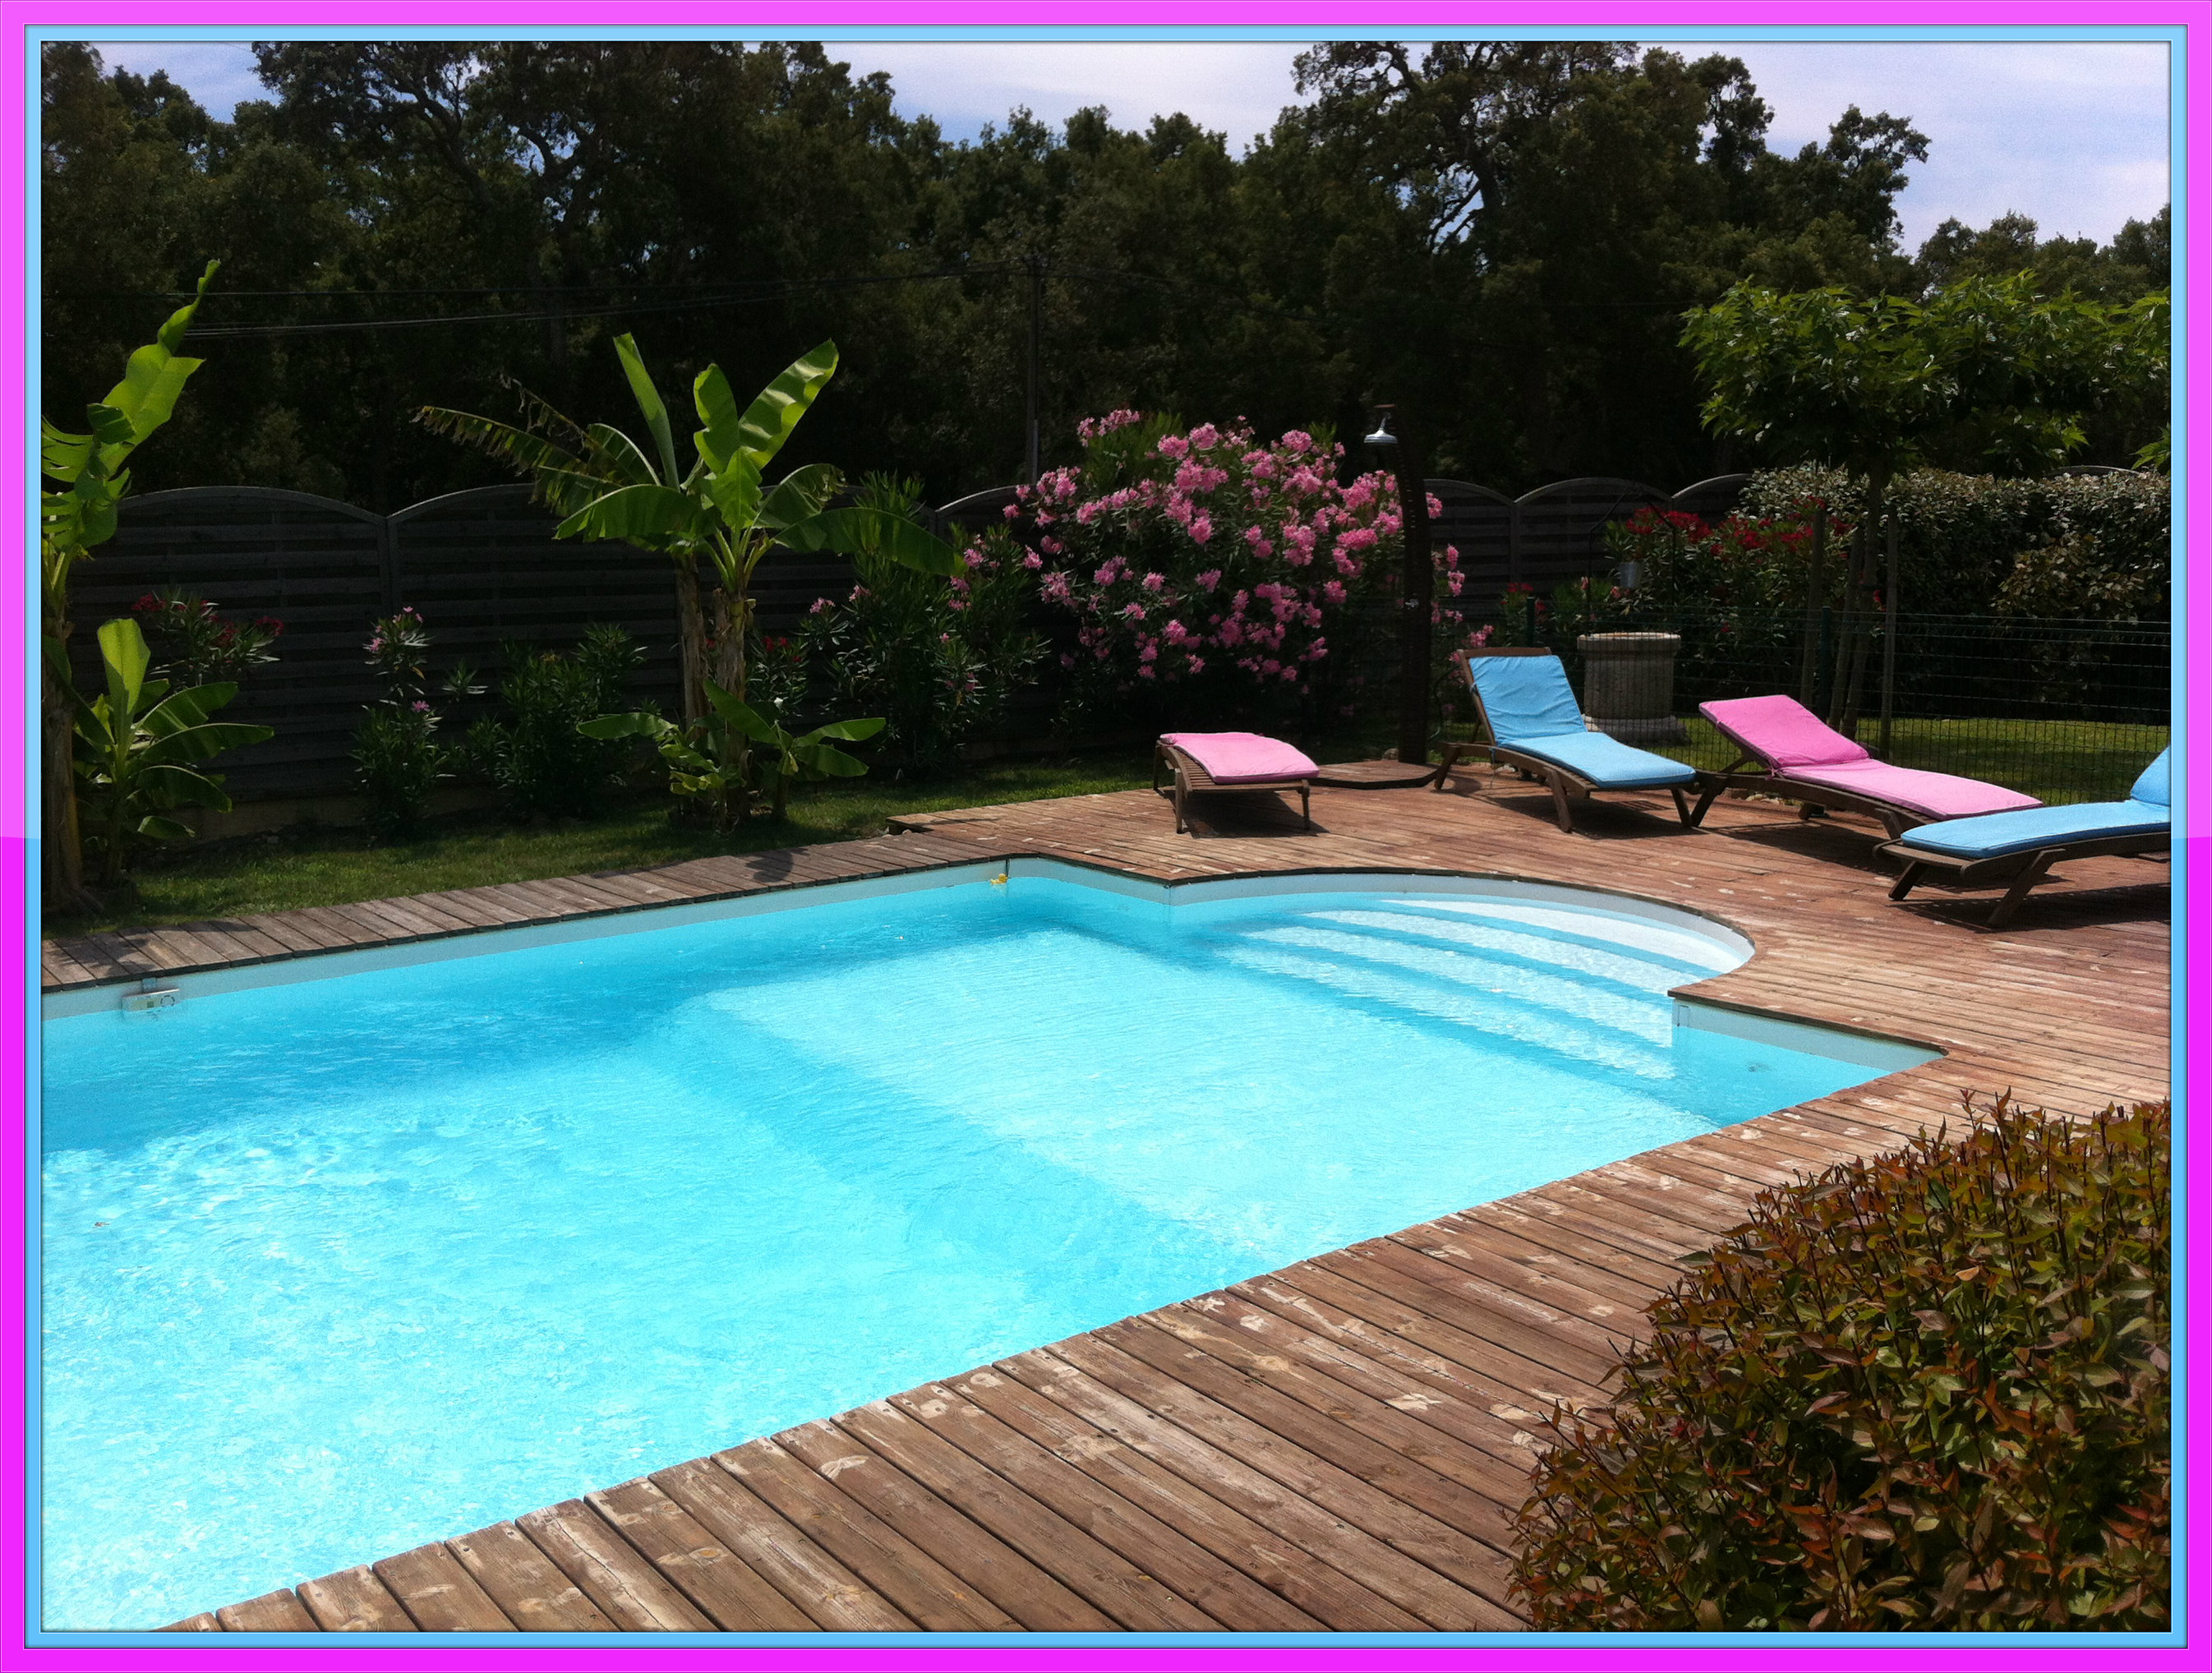 My Holidays In Corsica The Swimming Pool Of Our House Chair Family Photo 35191533 Fanpop